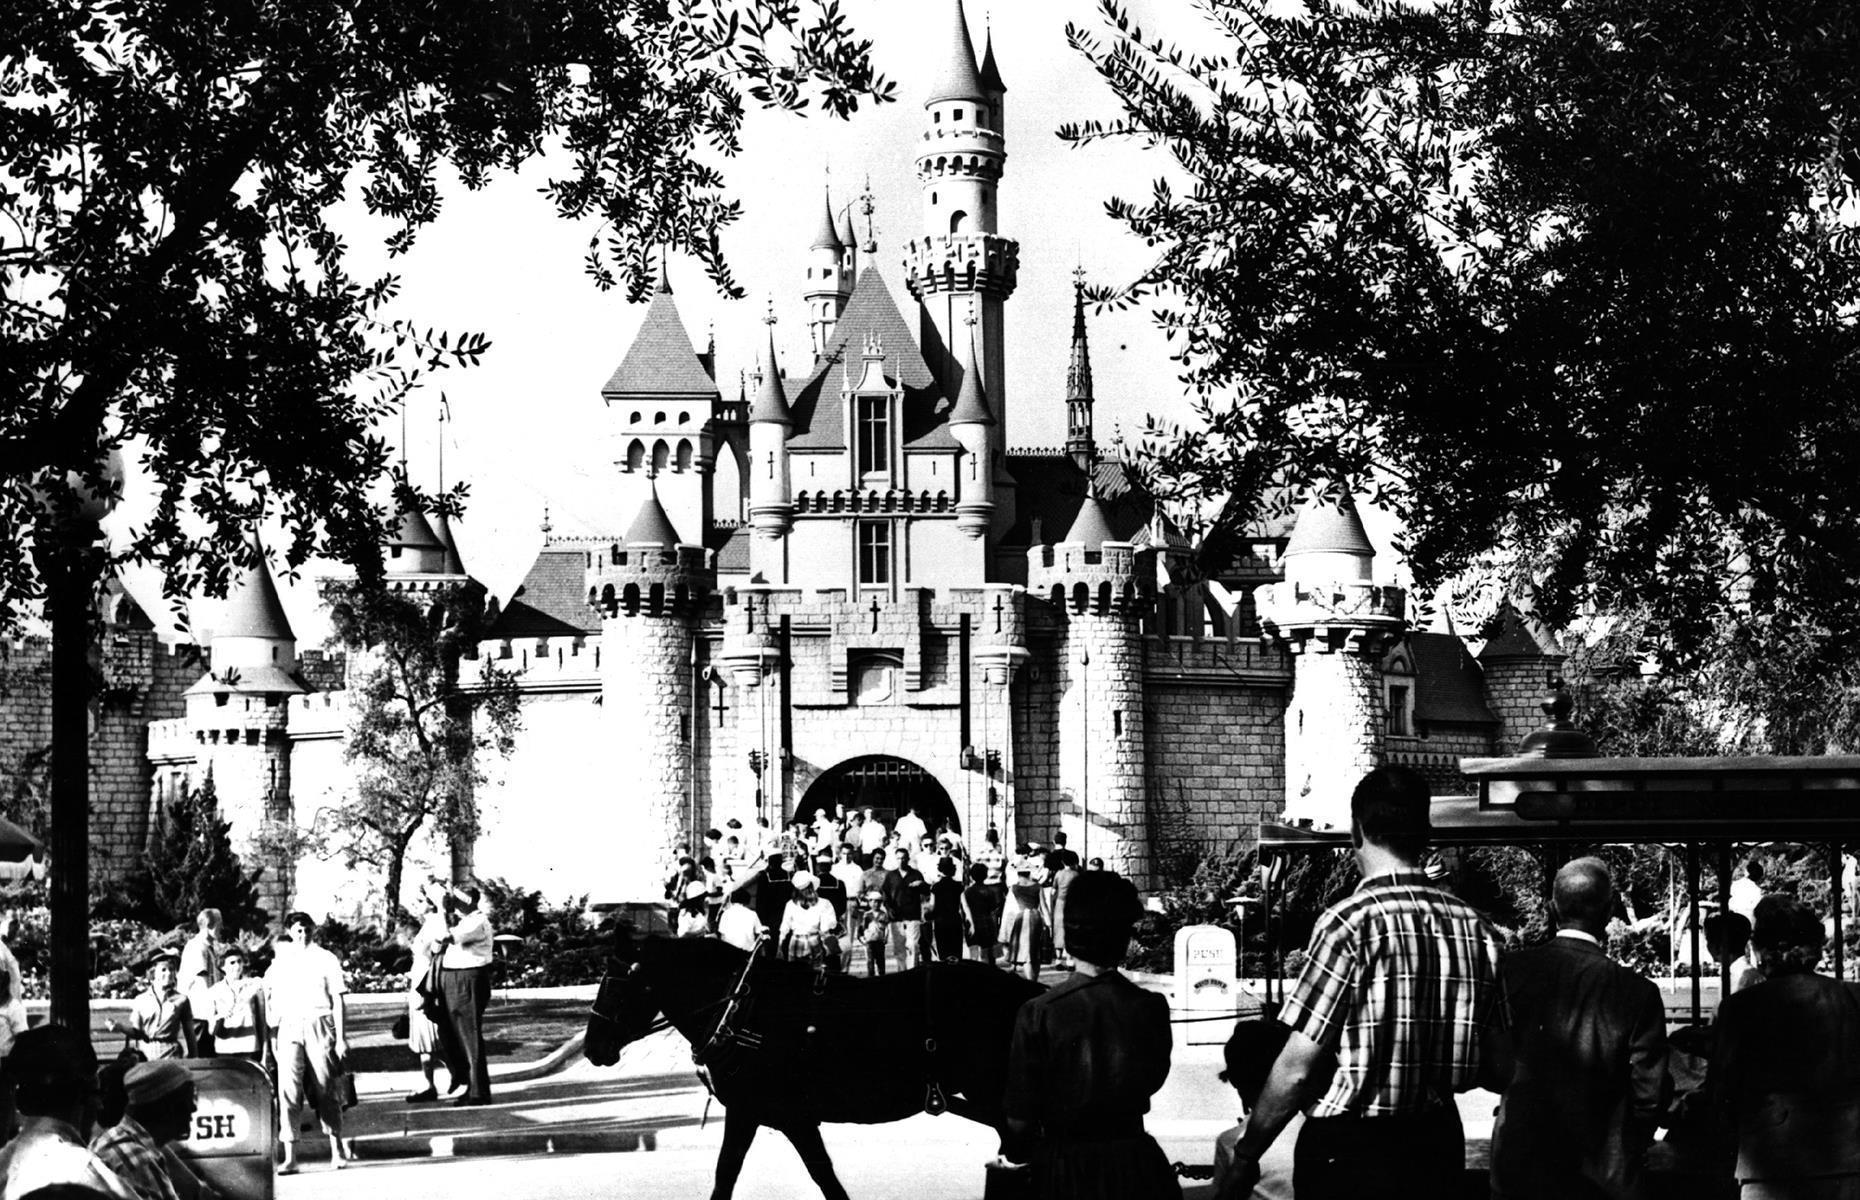 Slide 13 of 47: The park opened in 1955 to much applause, with the fairy-tale Sleeping Beauty Castle the star attraction. The opening day didn't go quite as planned, though, since hundreds more visitors than expected poured through the park gates. But luckily that didn't dim Disneyland's appeal – themed areas such as Fantasyland and futuristic Tomorrowland offered plenty for awe-struck early visitors to explore.